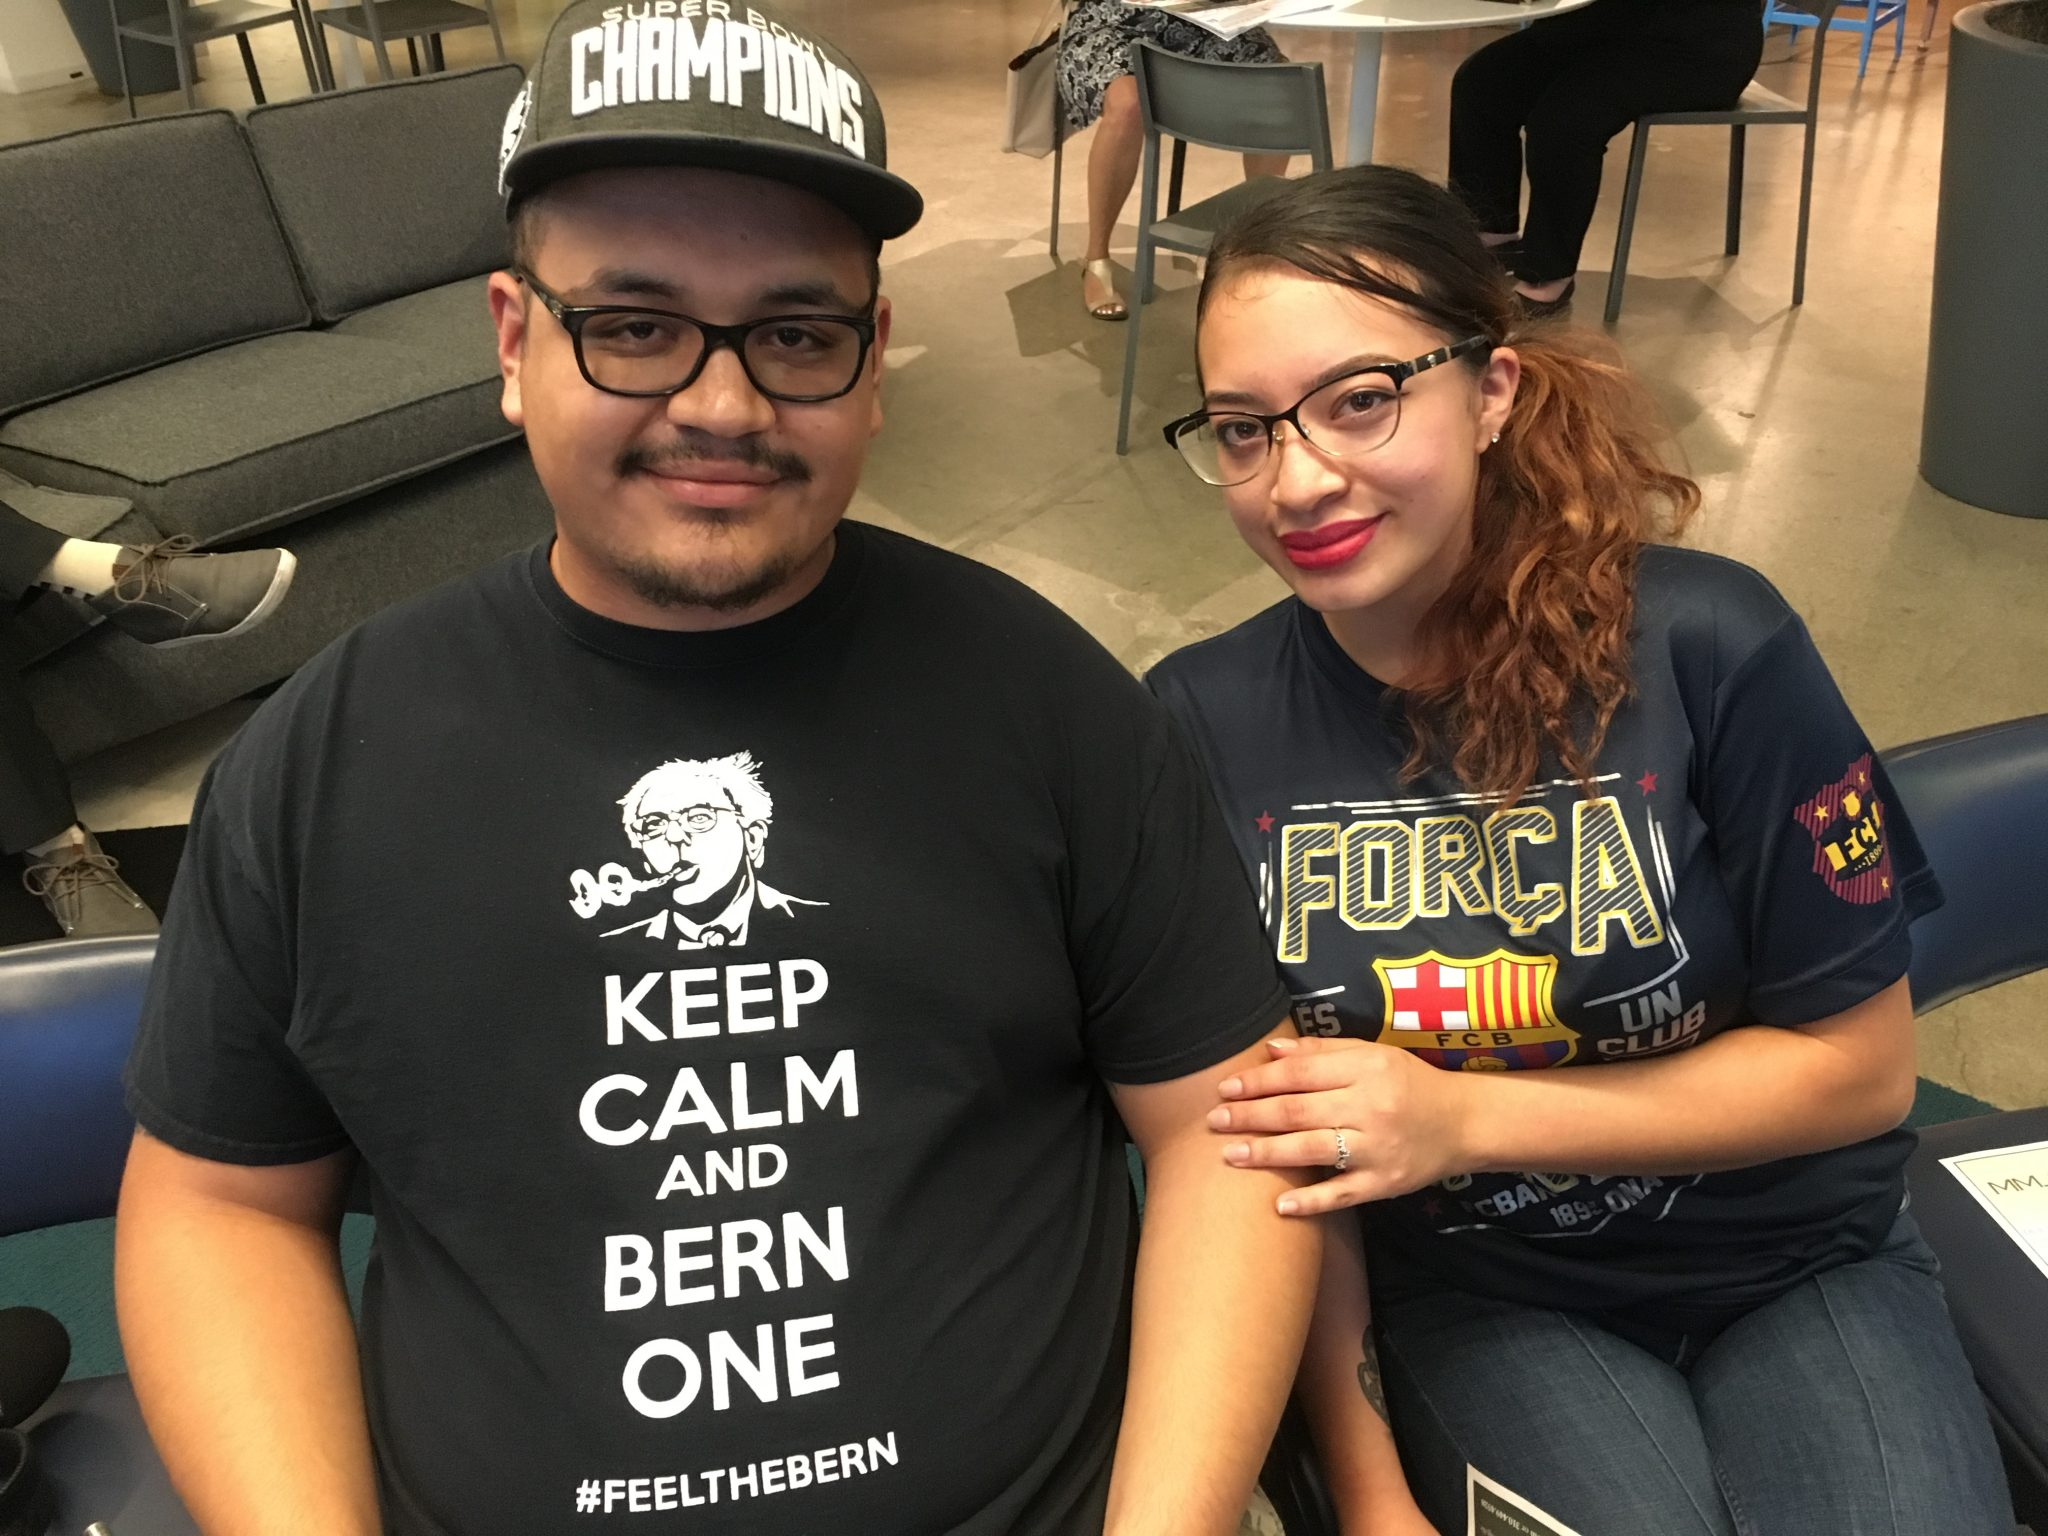 Bryan Garcia and his fiancé, Valeria Melgar, are hoping to apply for a cannabis license through the social equity program. Garcia was arrested at the age of 19 for possession with intent to sell, and is now hoping to enter the market legally.